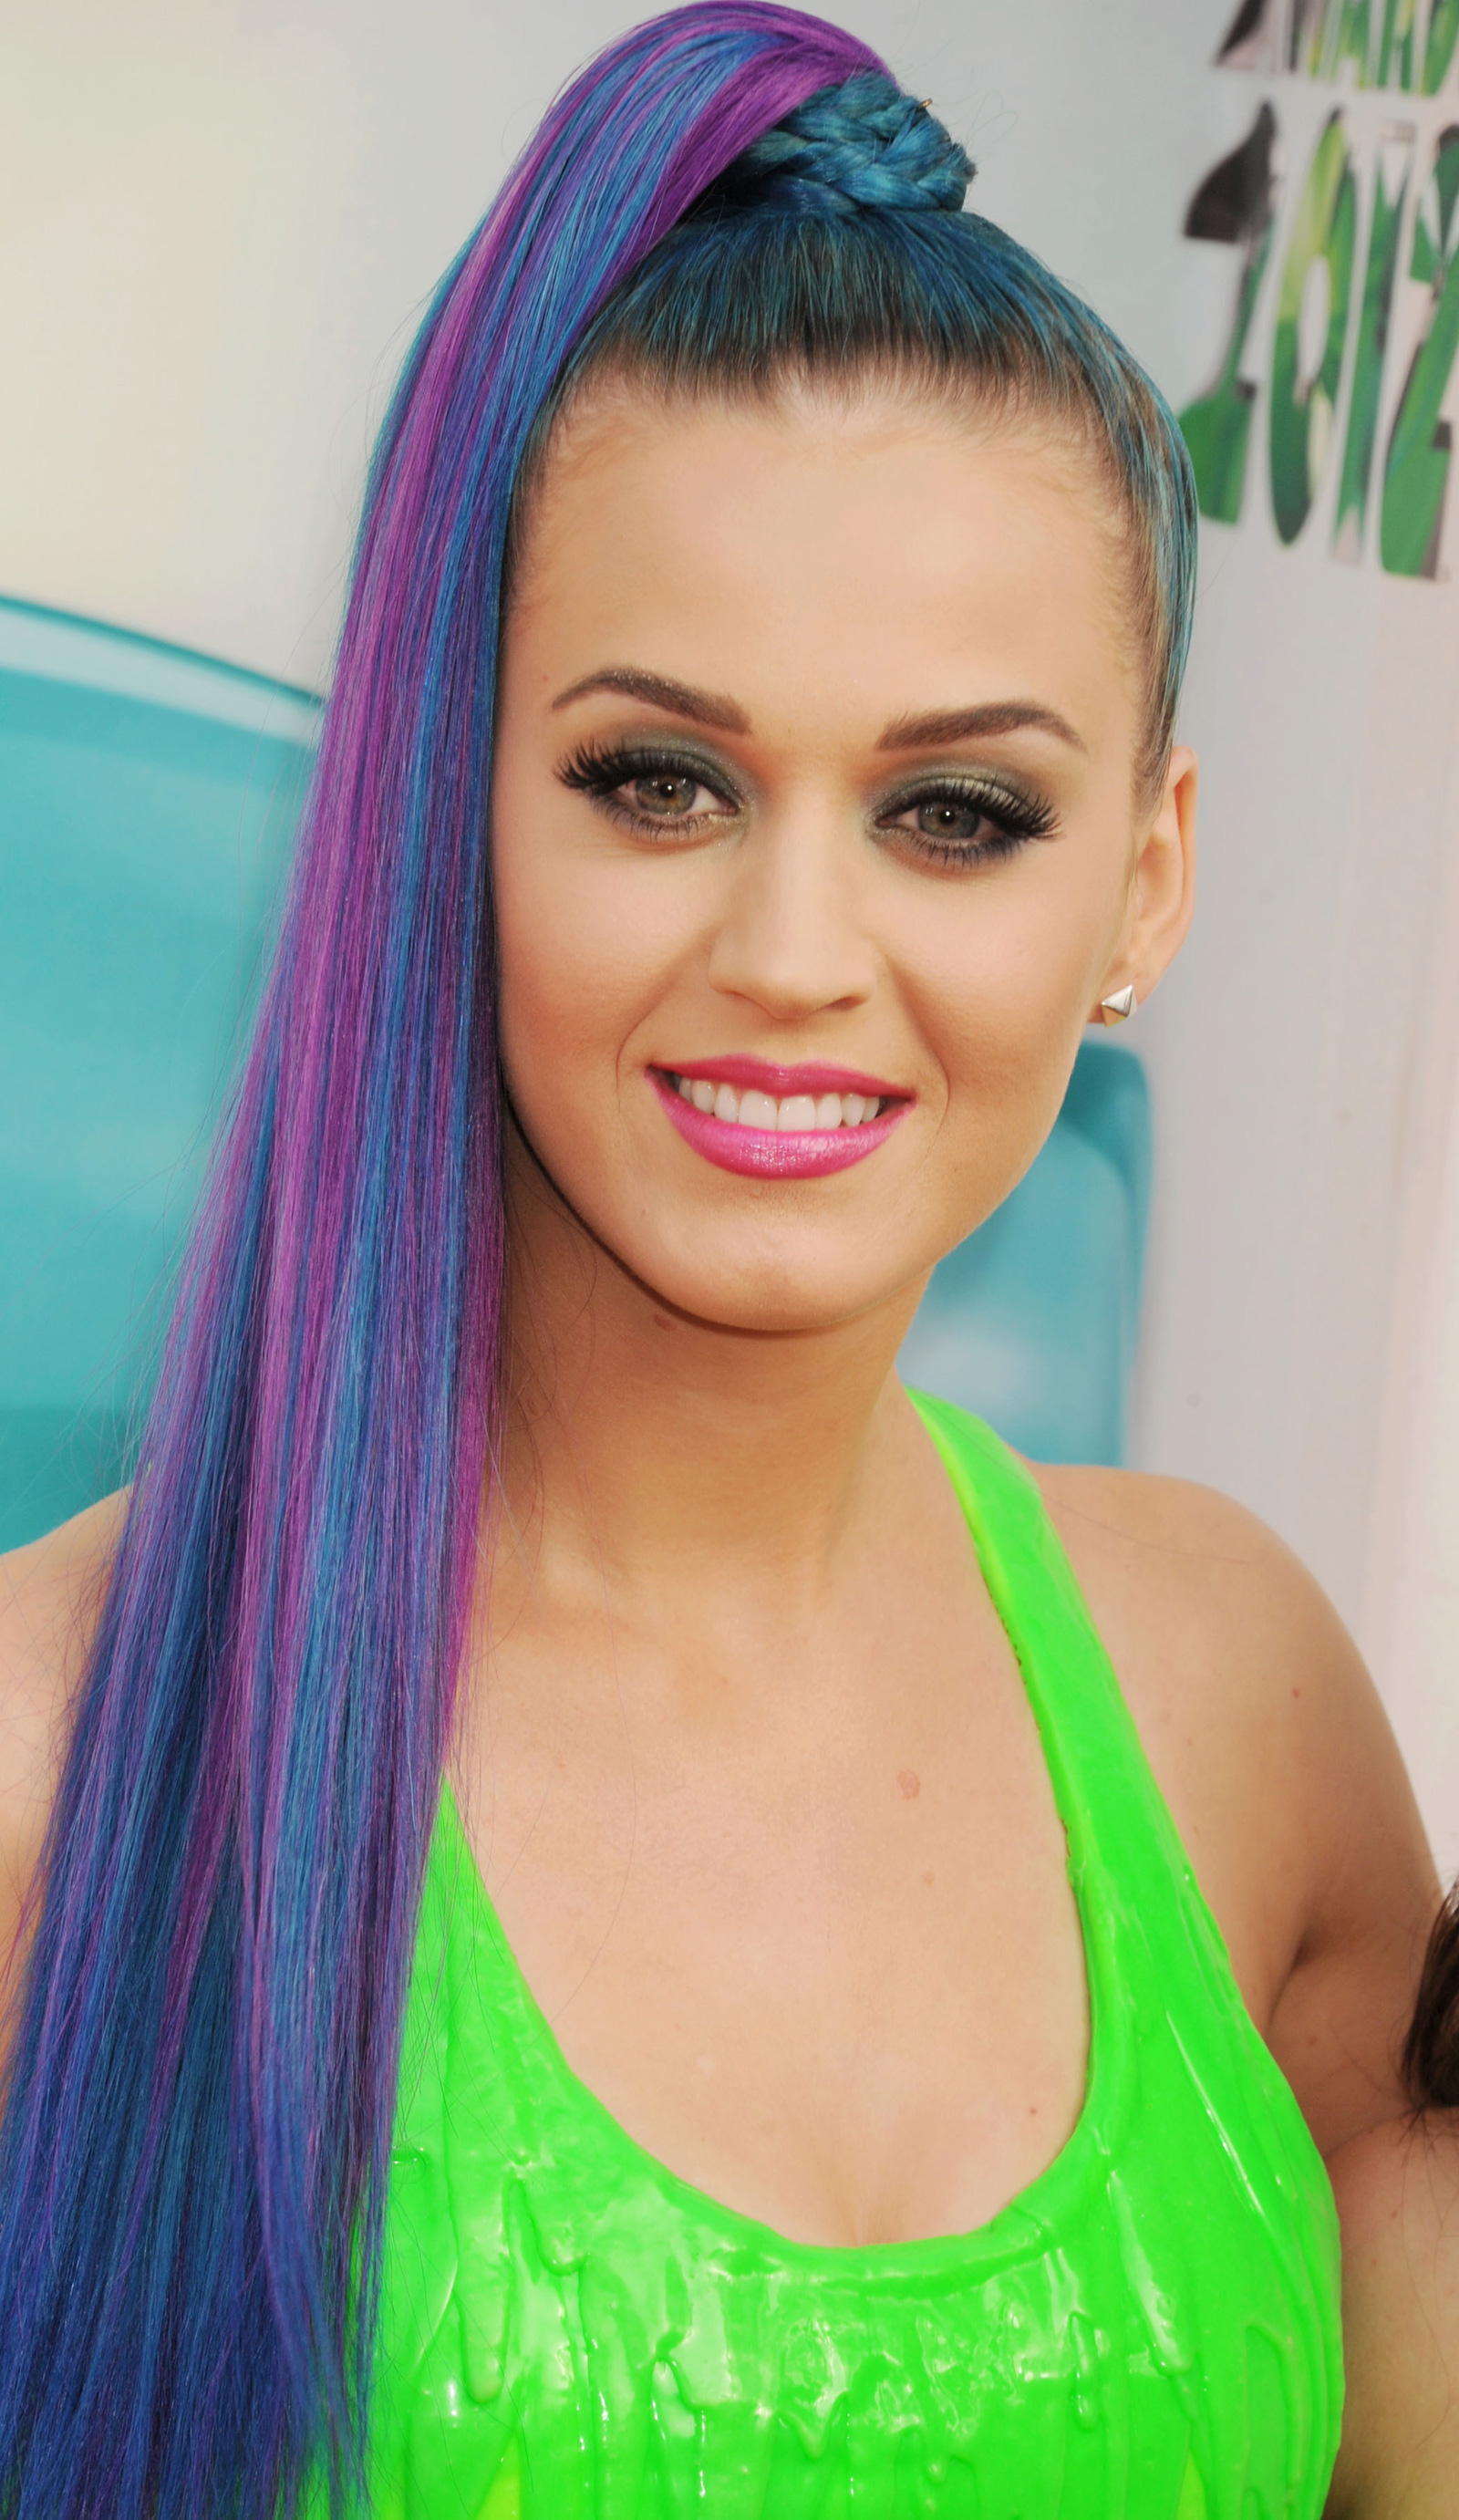 Katy Perry with blue and purple hair